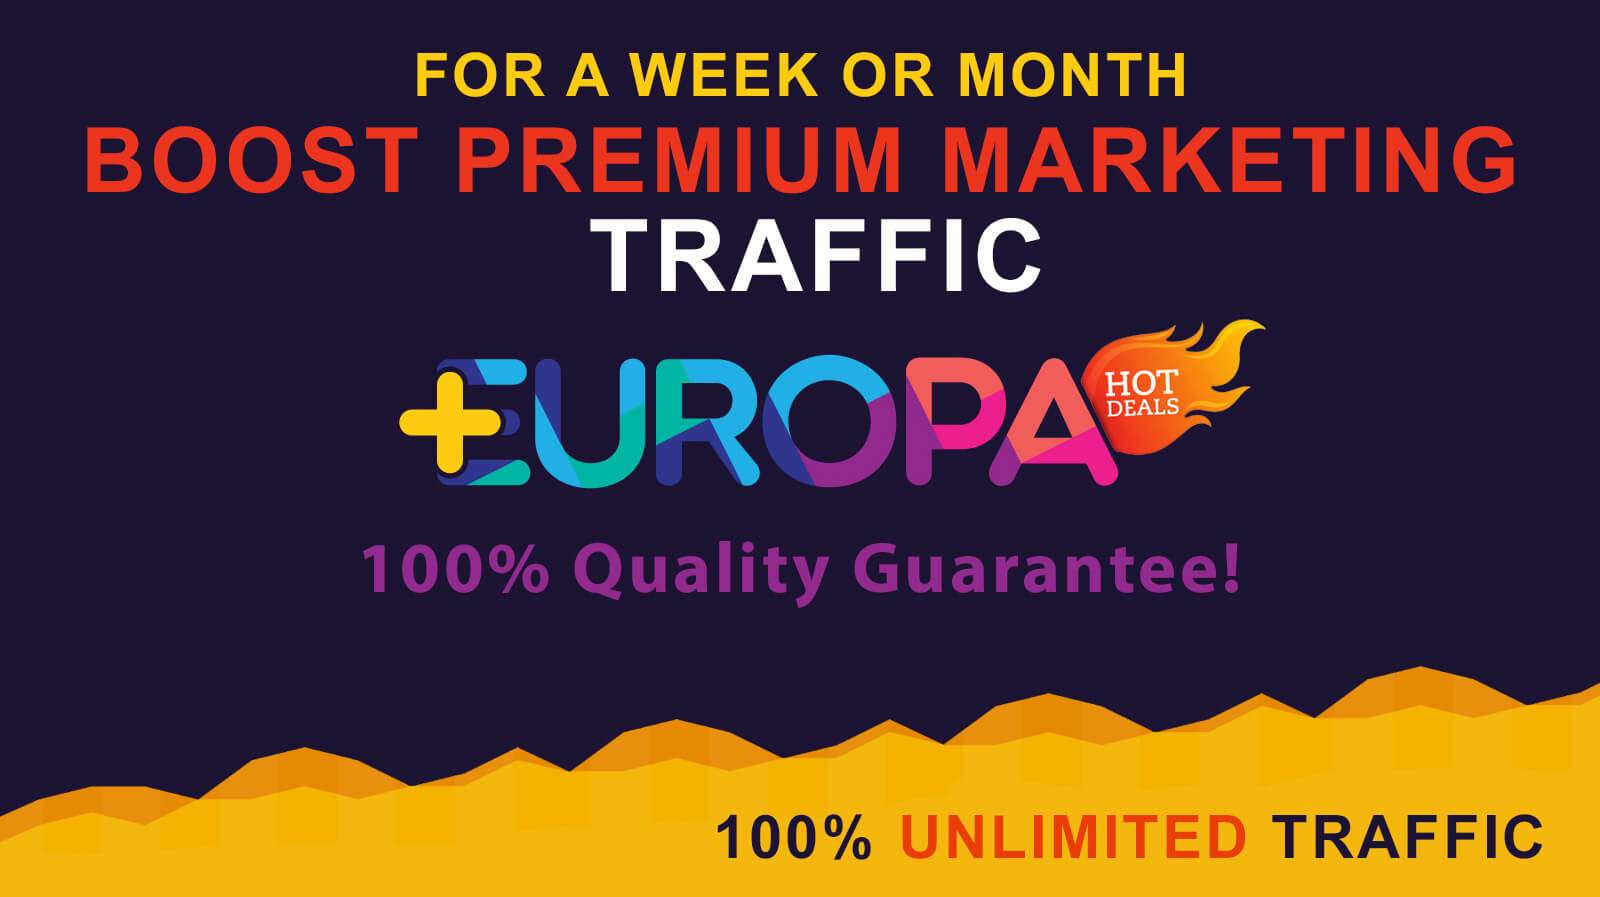 BOOST PREMIUM MARKETING TRAFFIC